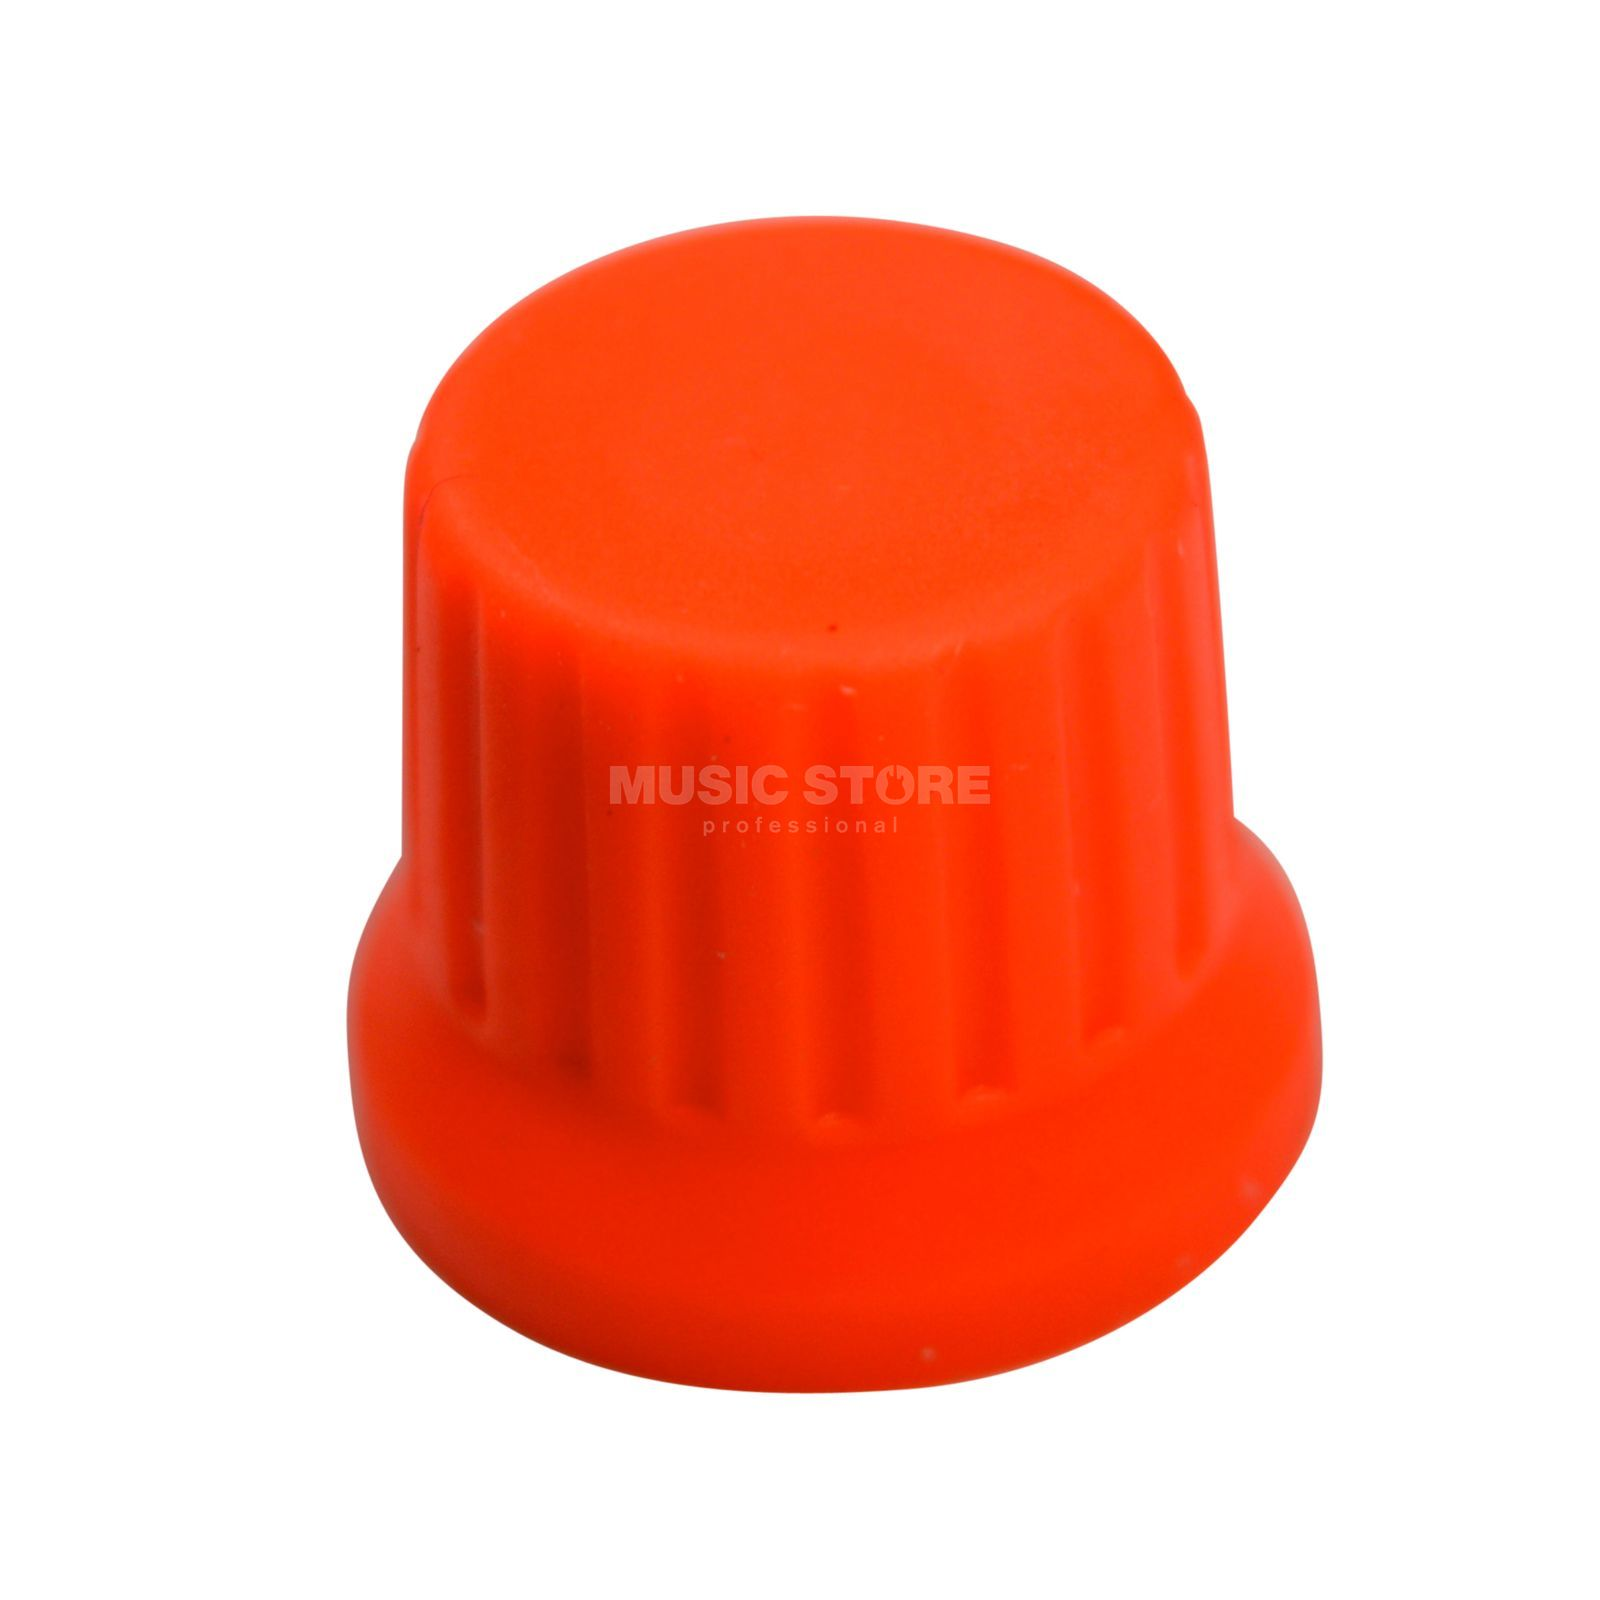 DJ TECHTOOLS Chroma Caps Encoder Knob neon orange Produktbild